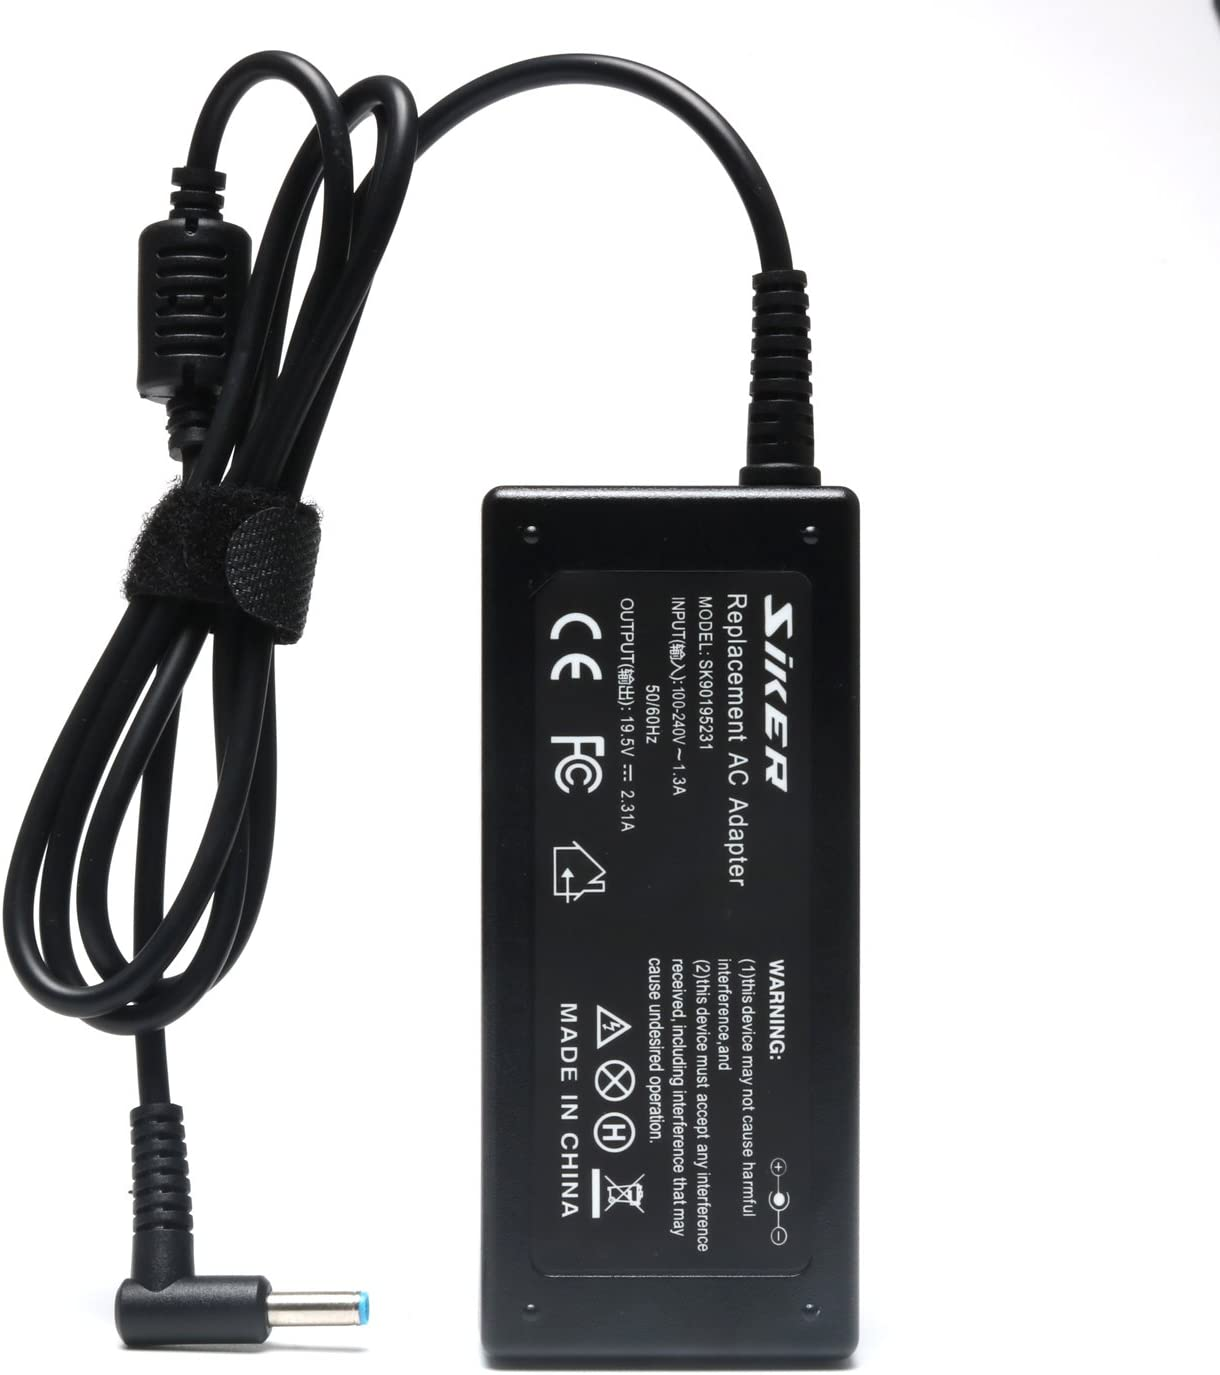 19.5V 2.31A 45W AC Adapter Charger for HP Stream 11 13 14; Split 13 X2; Elitebook Folio 1040 G1; Pavilion X2 11 13 15, Compatible 719309-003 721092-001 741727-001 740015-001